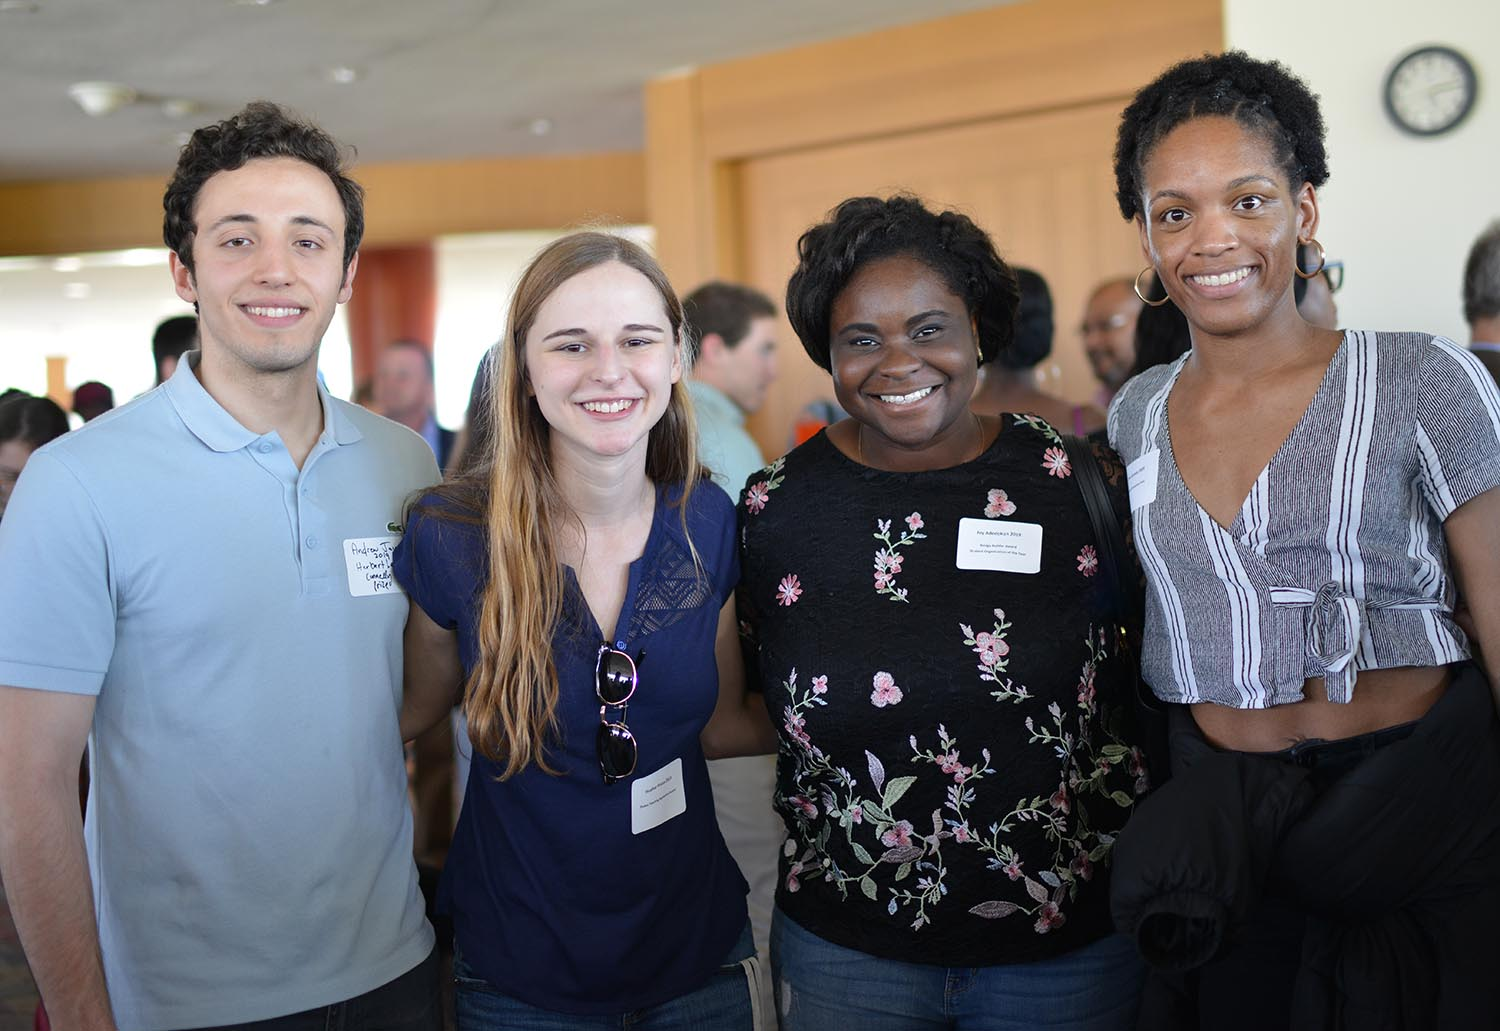 Andrew Jacono '19 won a Herbert Lee Connelly Prize for demonstrating an interest in English literature. Heather Pincus '19 won a Plukas Teaching Apprentice Award for excellent service to the Economics Departments as a teaching apprentice. Joy Adedokun '19 won a Bridge Builder Award for succeeded in strengthening the relationship between Wesleyan and the greater Middletown community. Zoe Garvey '20 won the Dr. Neil Clendeninn Prize for achieved academic excellence in biology and/or molecular biology and biochemistry.